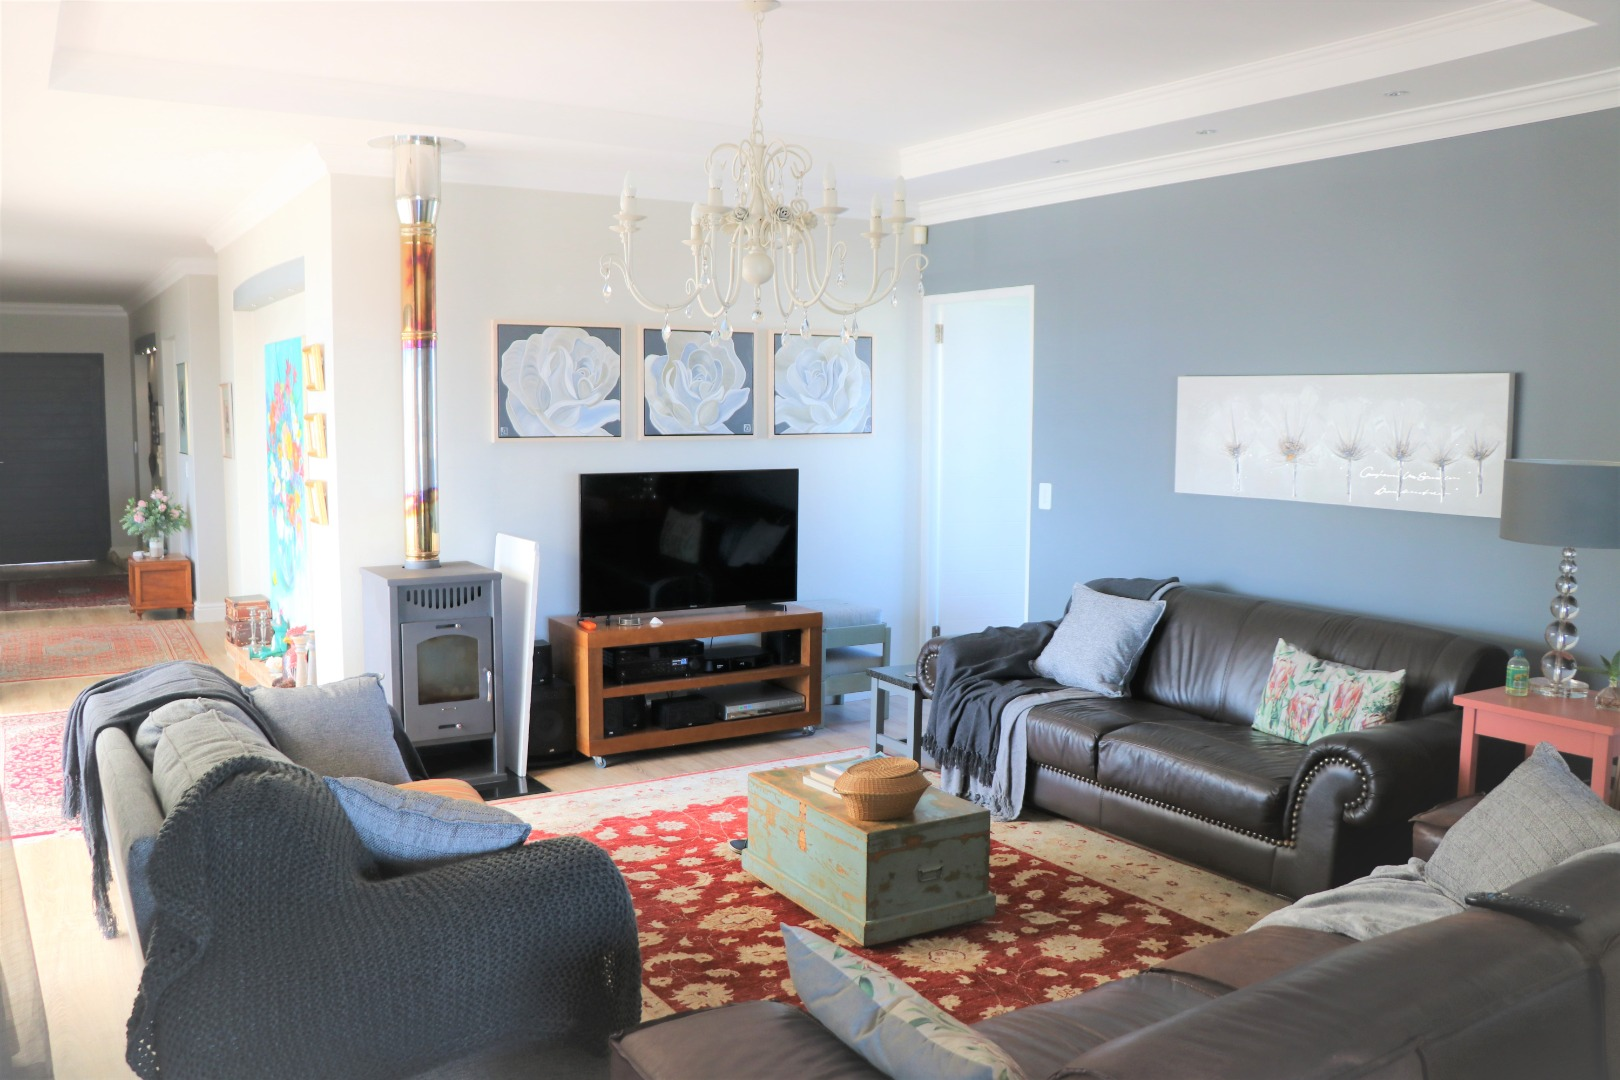 6 Bedroom House For Sale in Yzerfontein